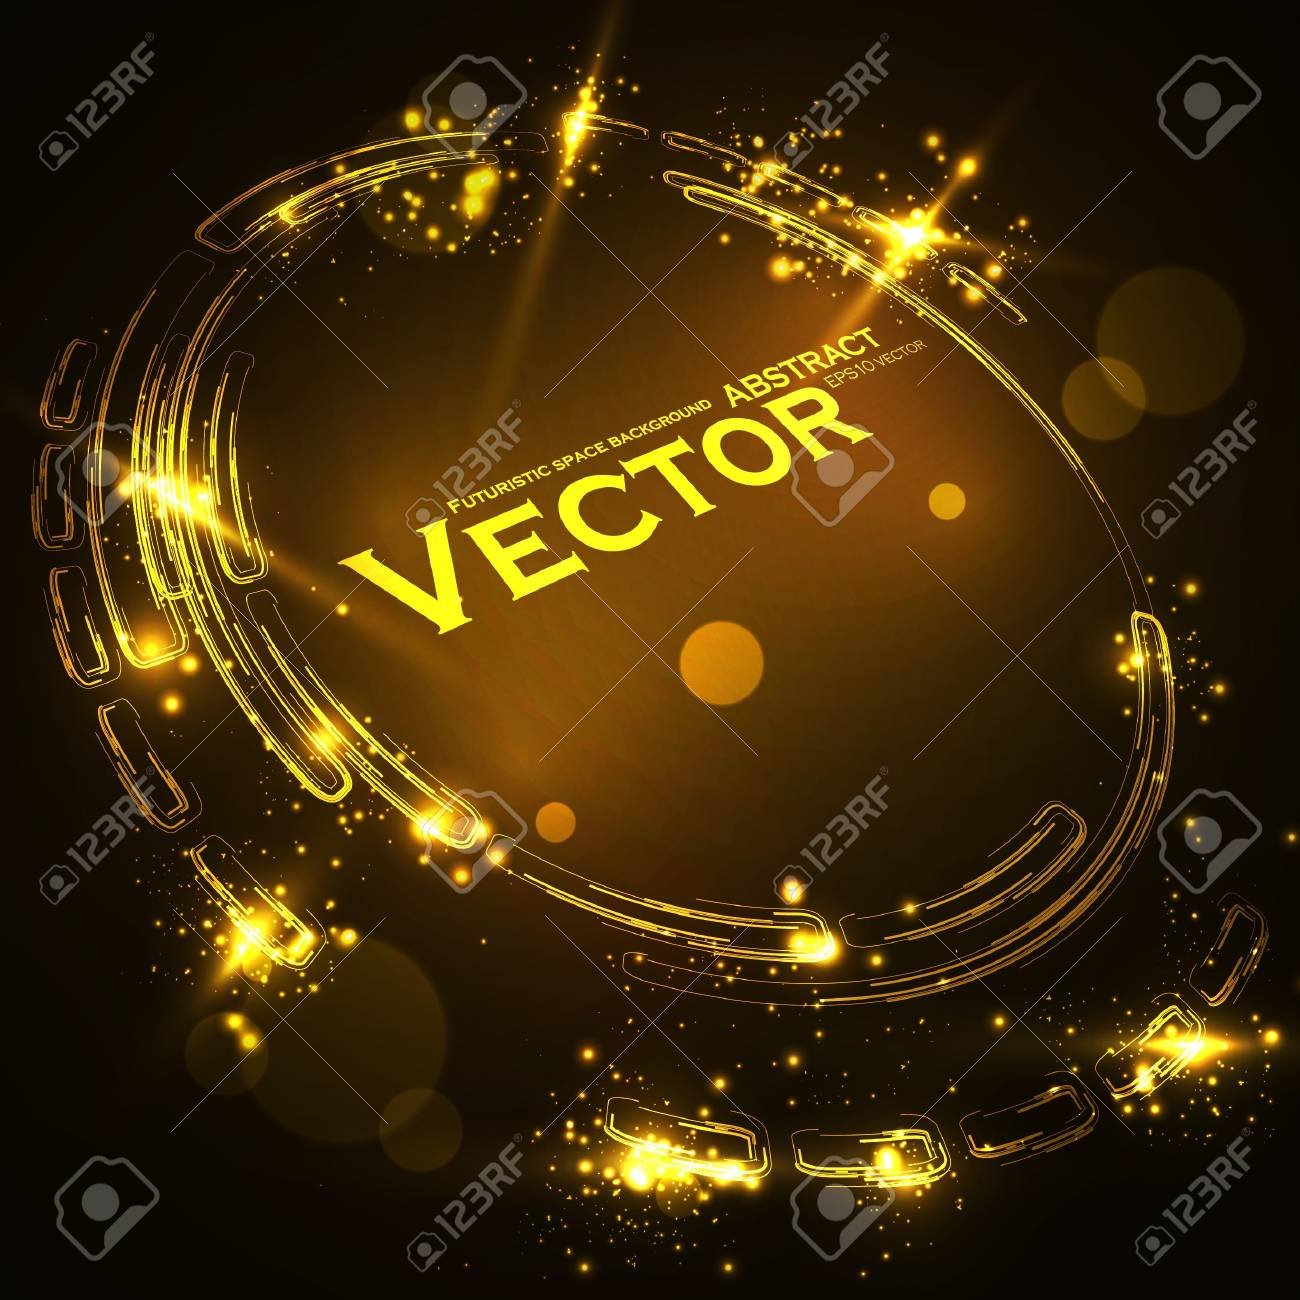 Abstract vector background  Creative dynamic element, shiny space